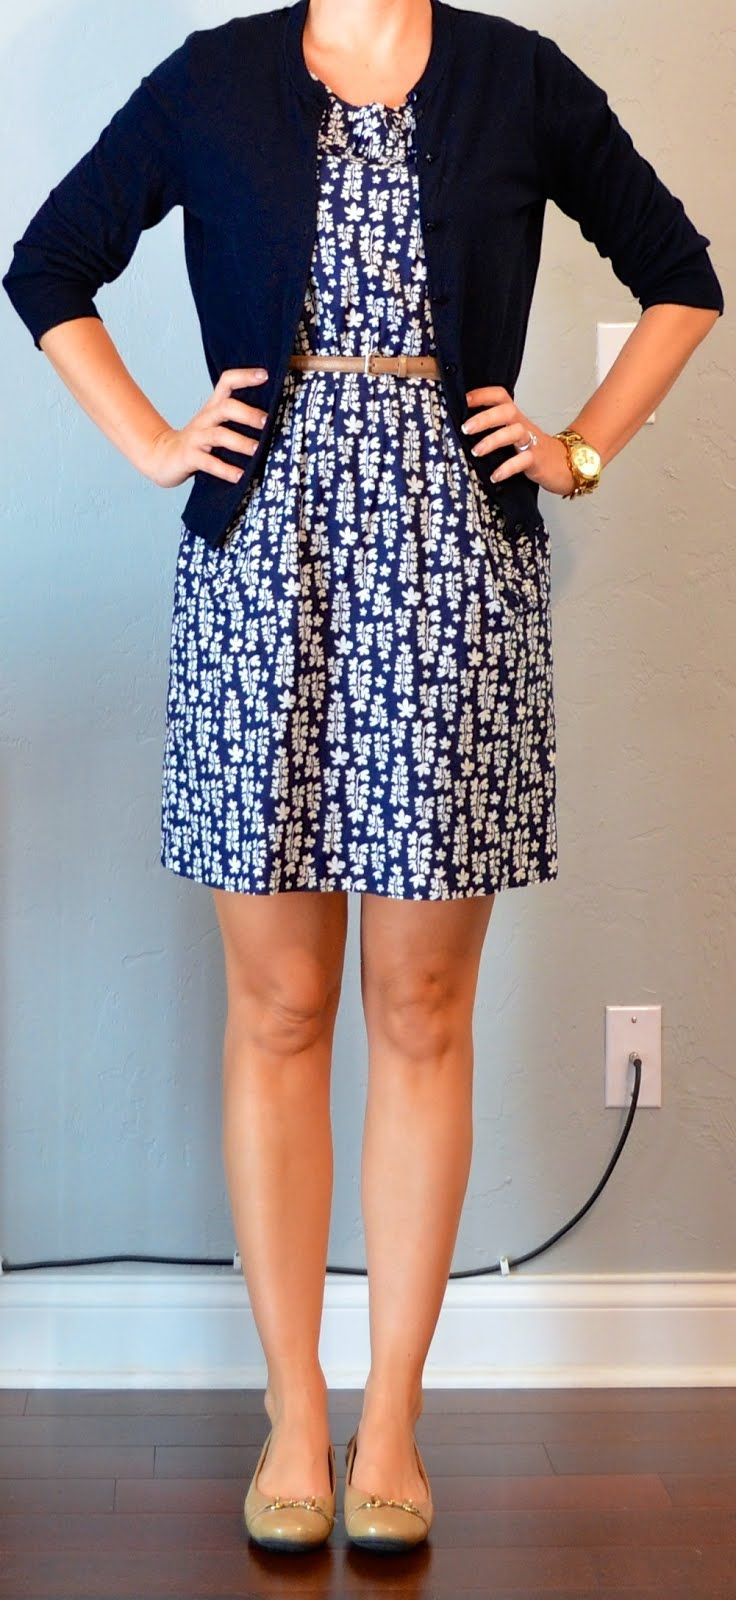 Outfit Posts: outfit post: blue floral dress, navy cardigan, gold belt